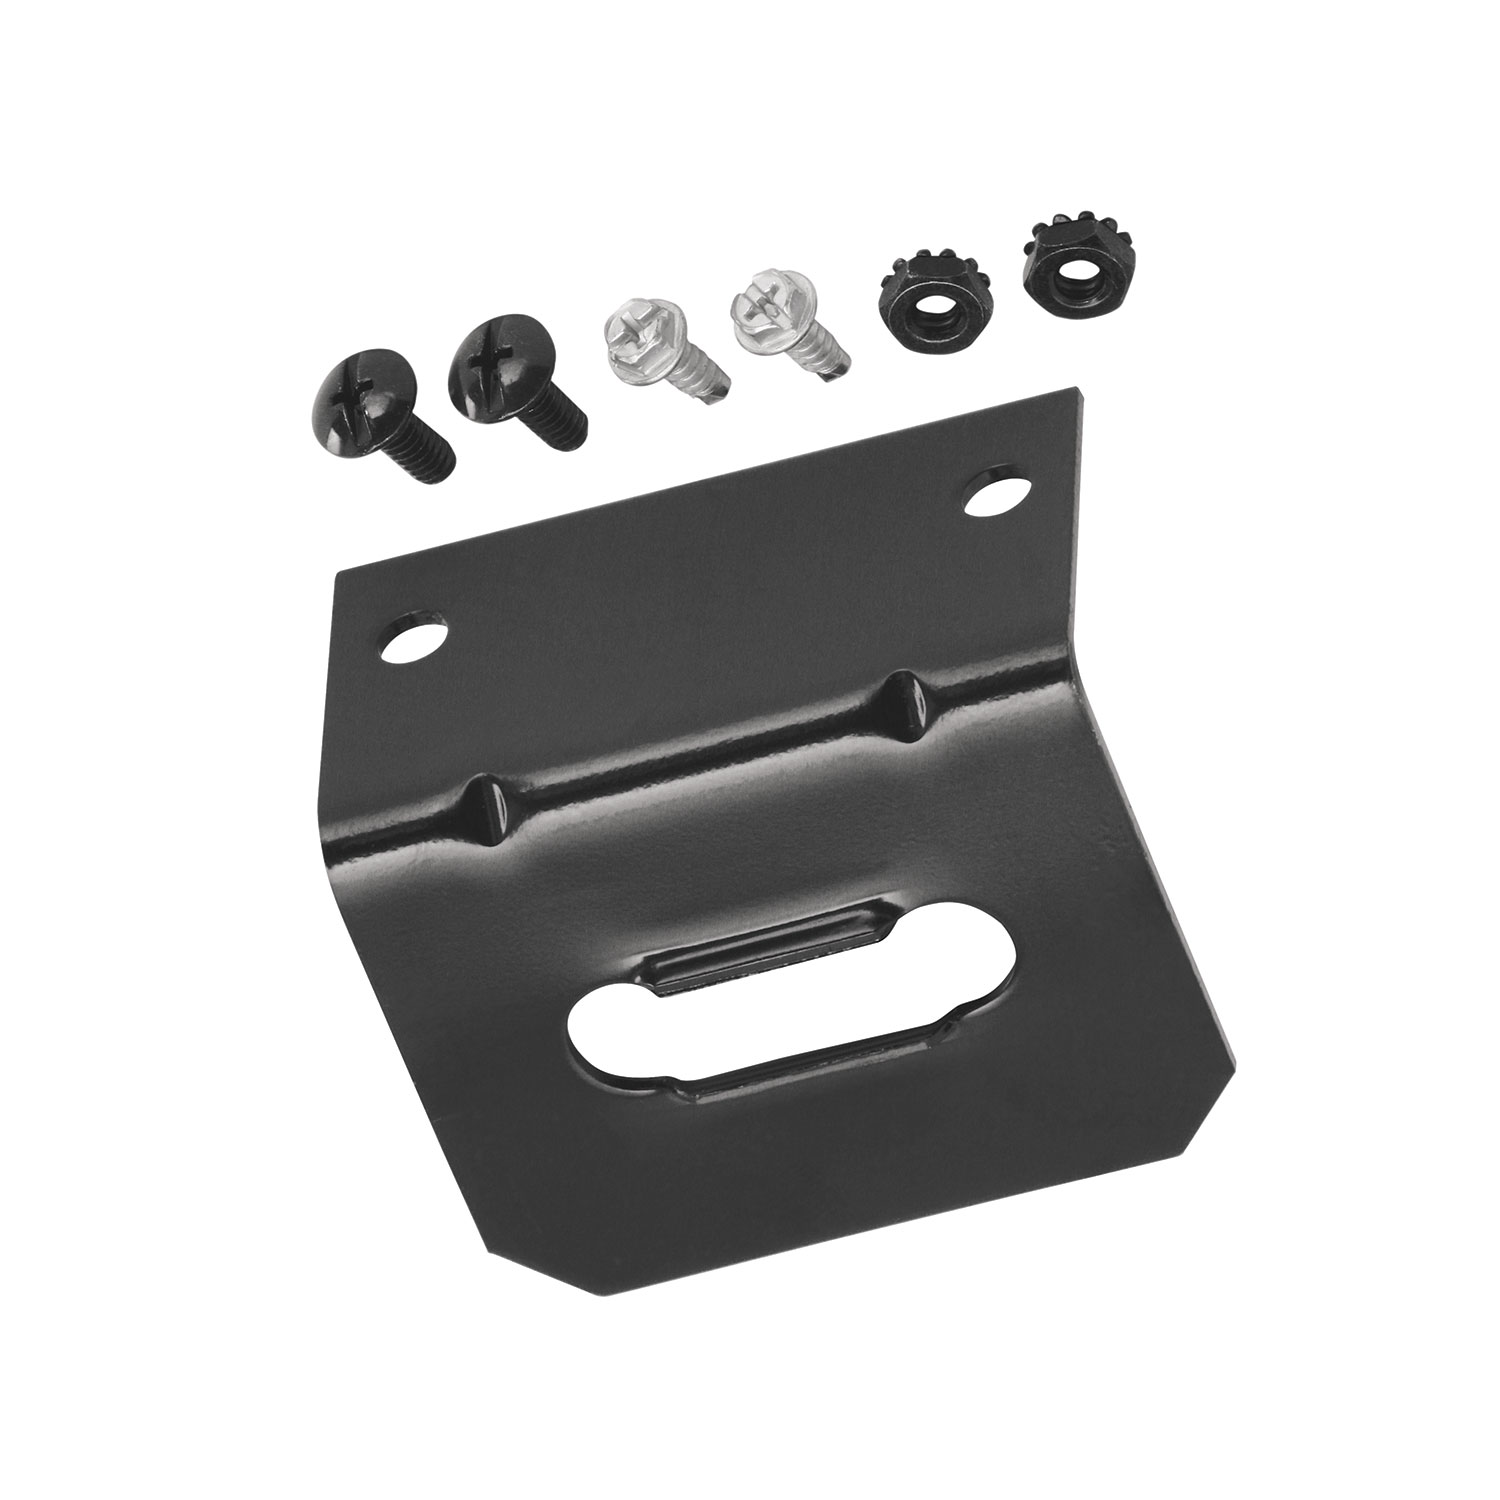 4 way wiring diagram remote western 4 way wiring bracket 118144 tow ready trailer wiring connector mounting bracket ...